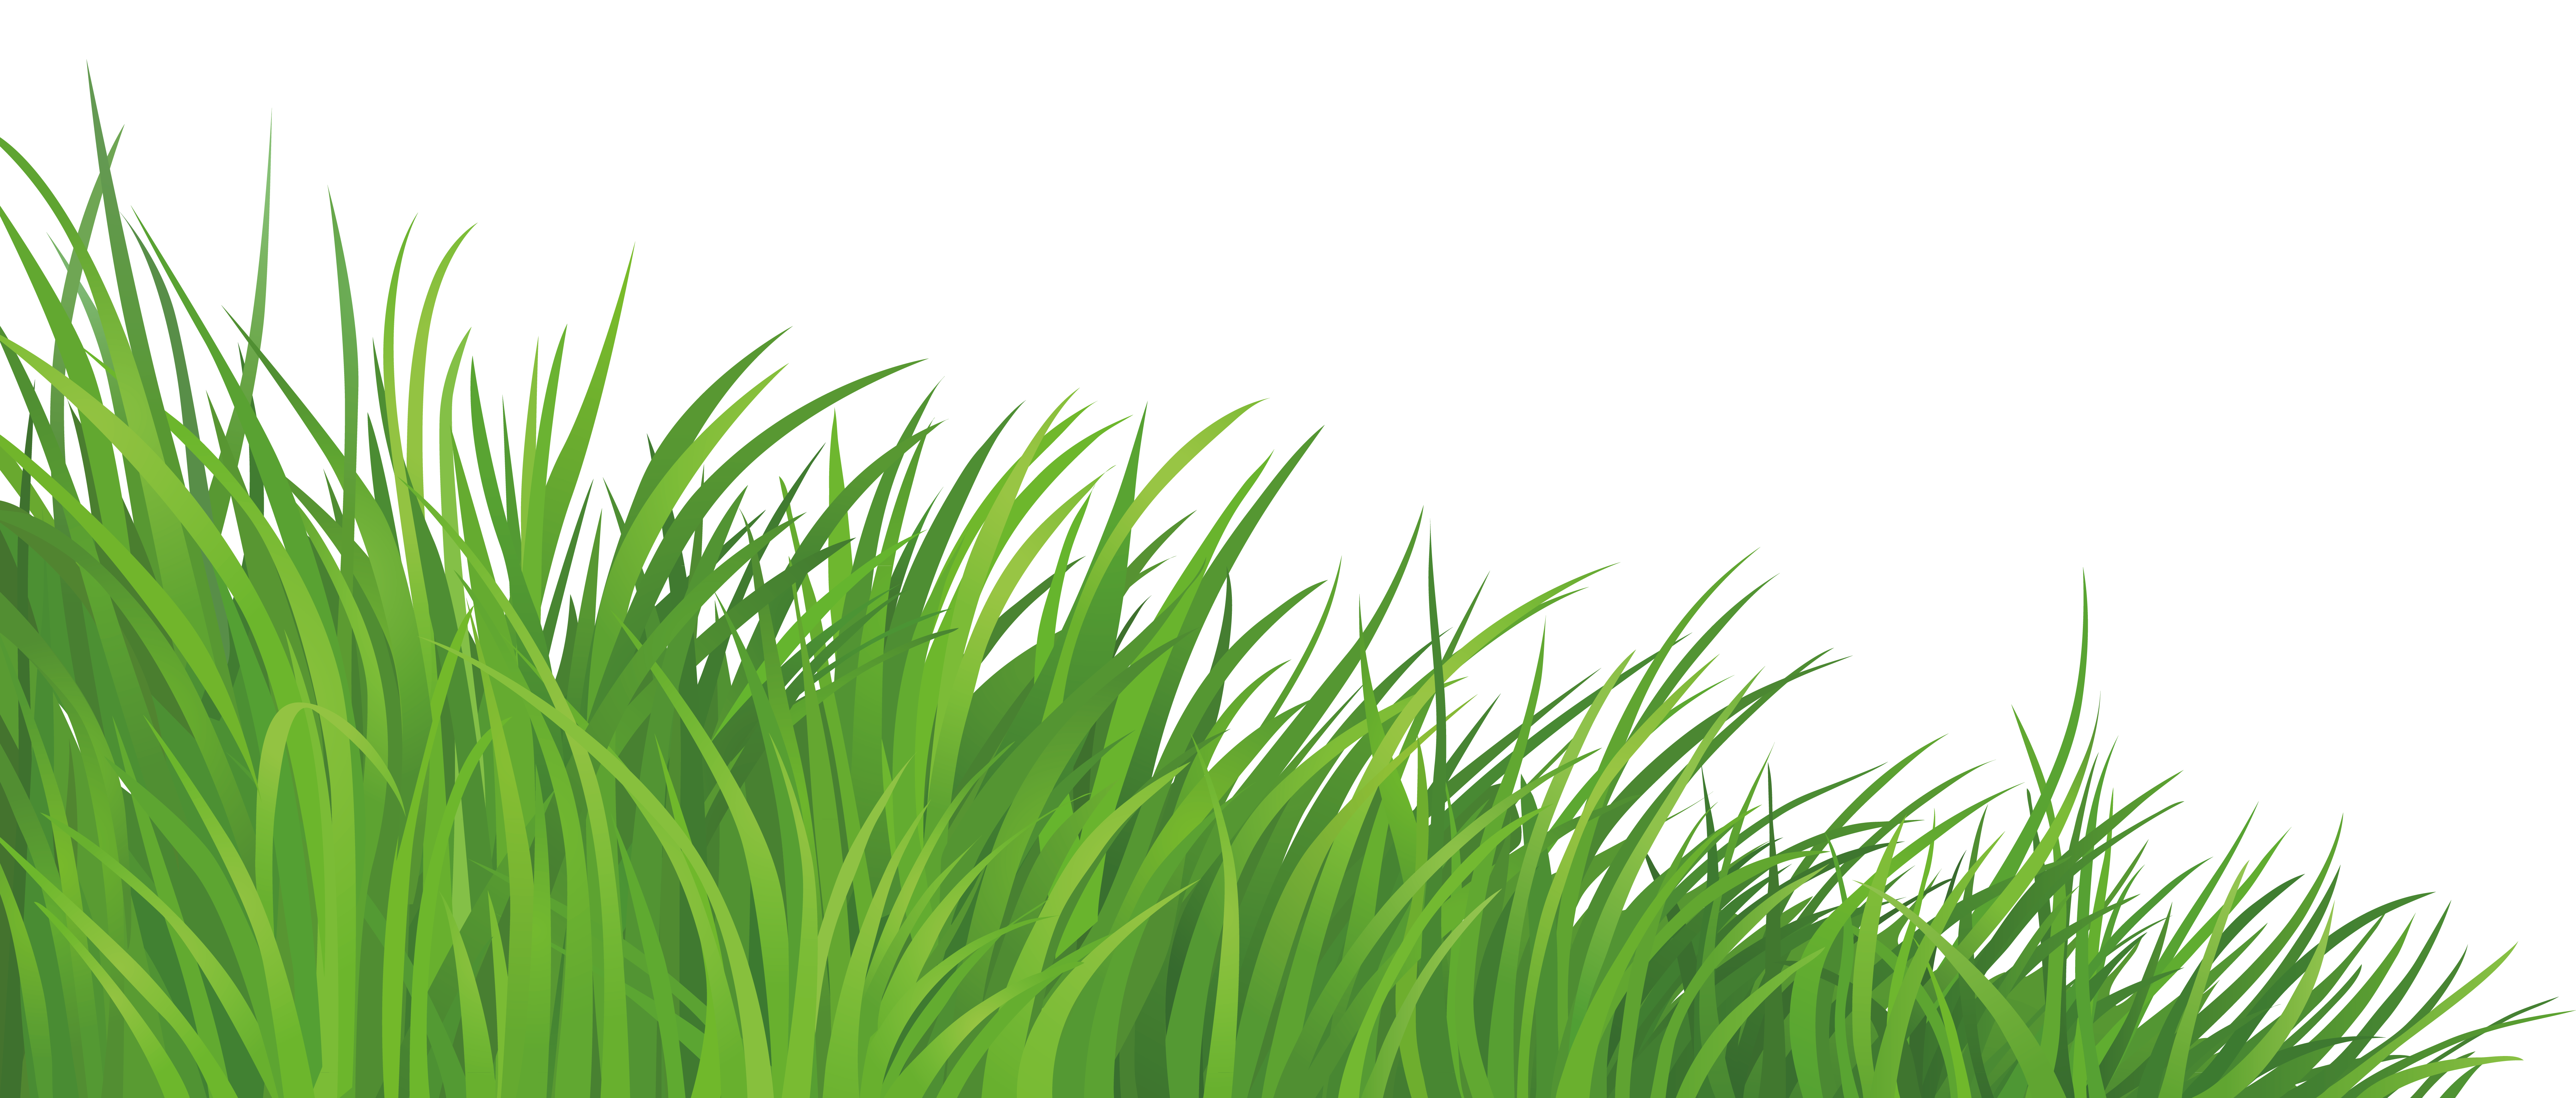 Png photo background. Grass element clipart picture